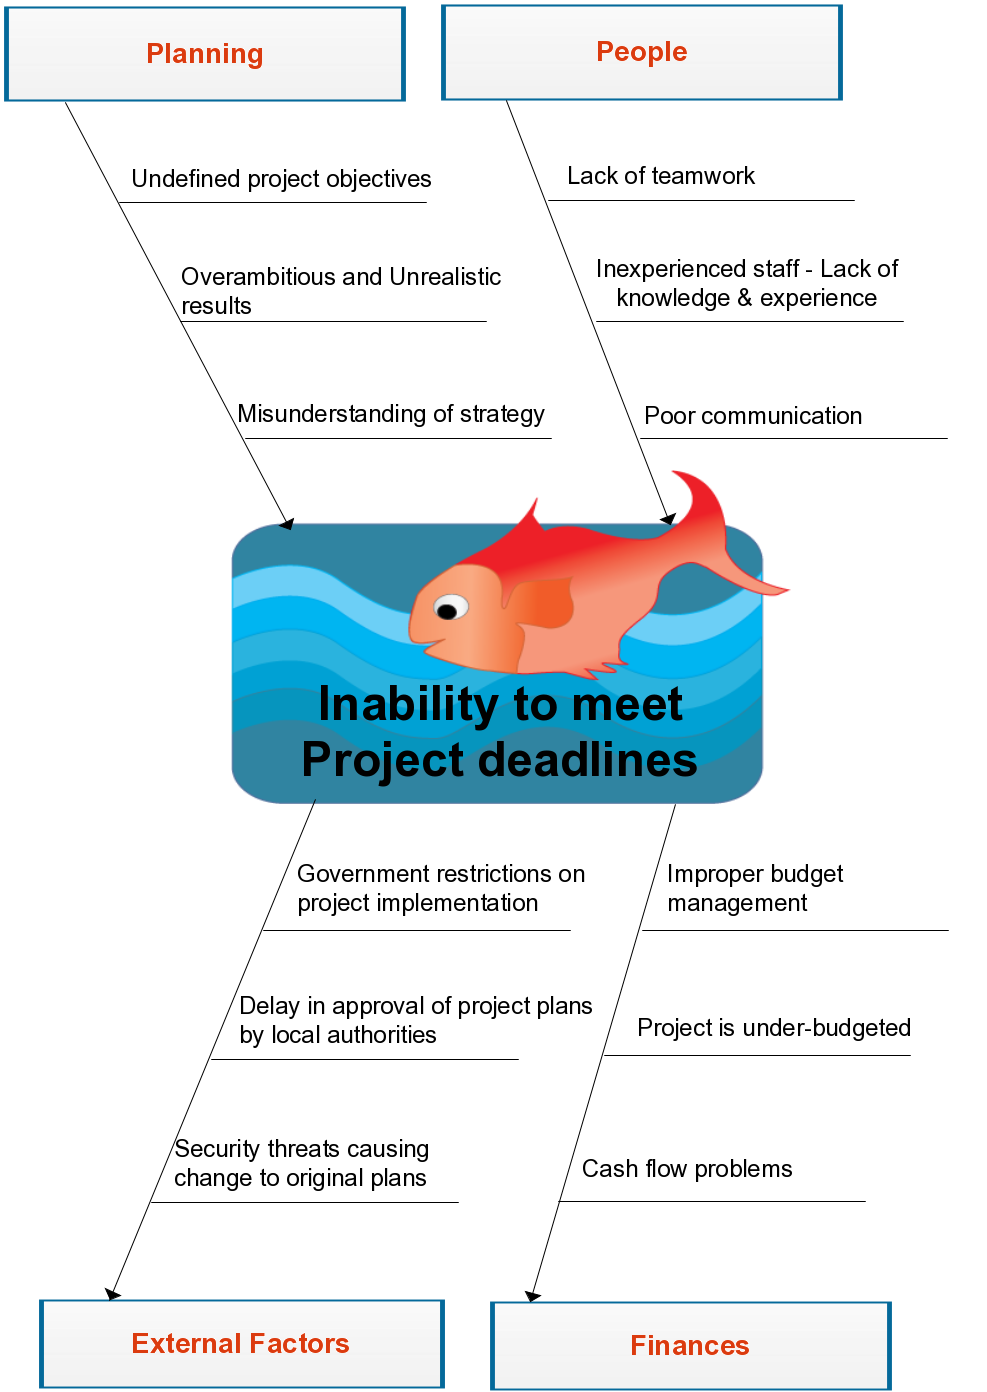 hight resolution of fishbone diagram example showing the inability to meet project deadlines in an organization